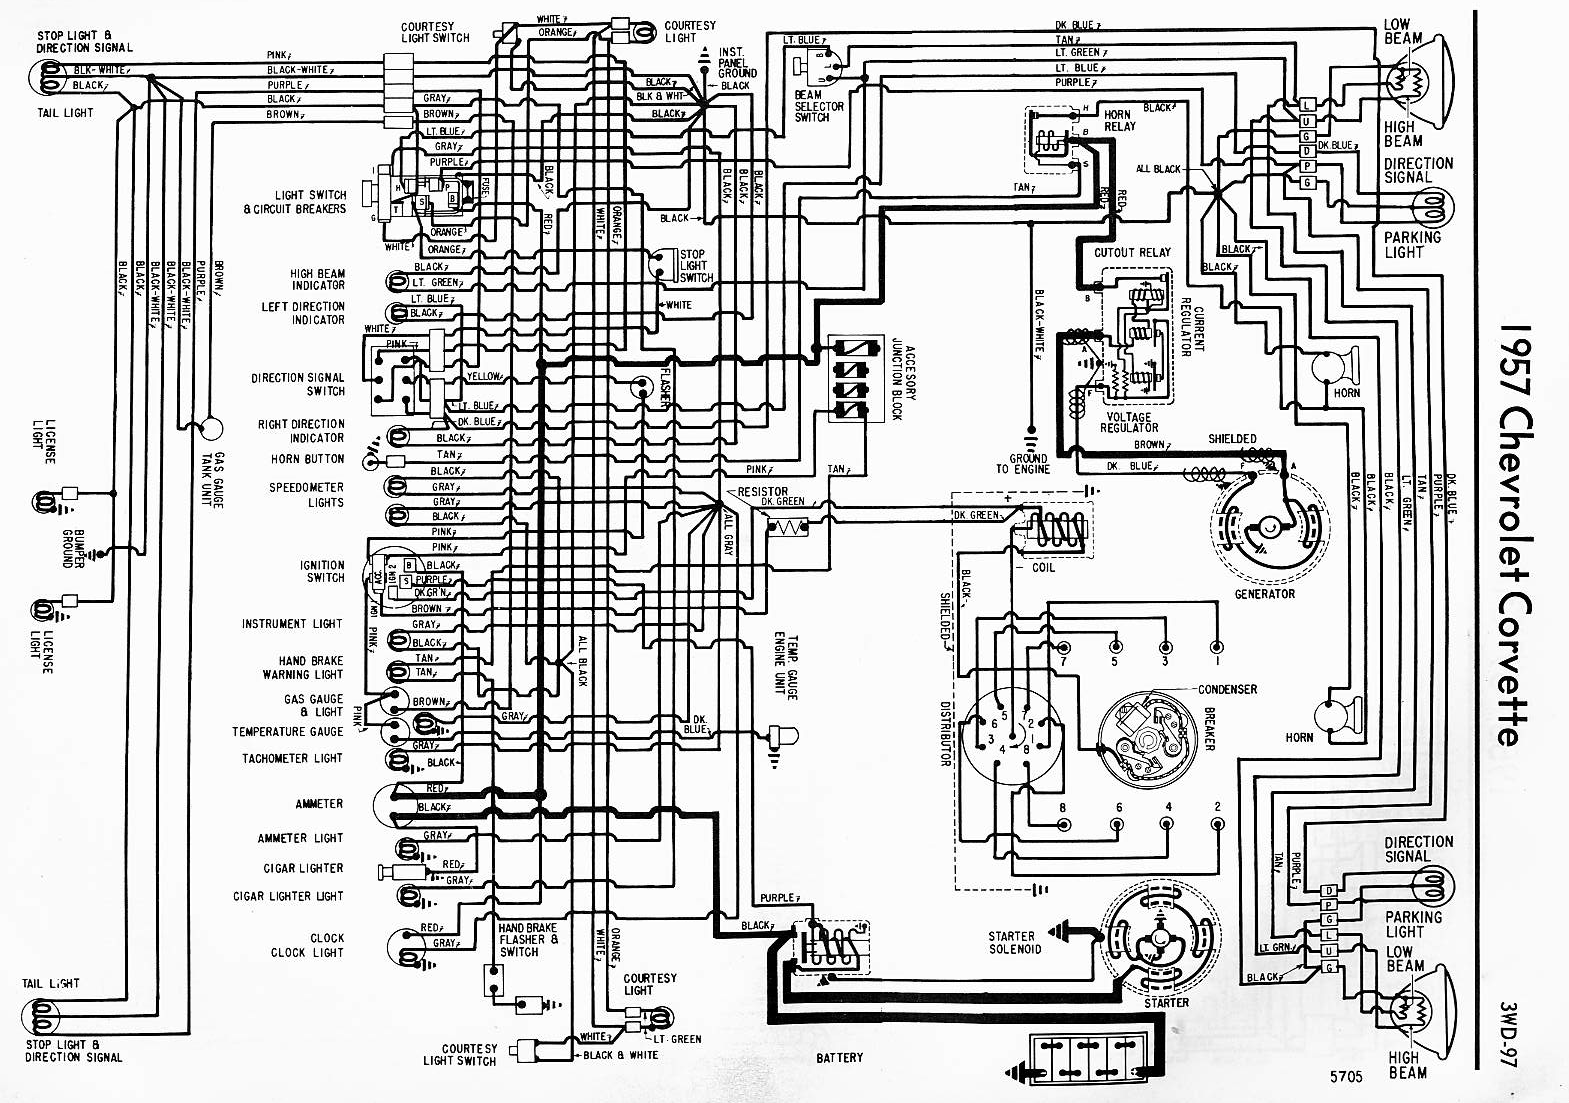 57 corvettte tracer schematic best one 1957 corvette wiring diagram willcox corvette, inc 1960 corvette wiring diagram at aneh.co